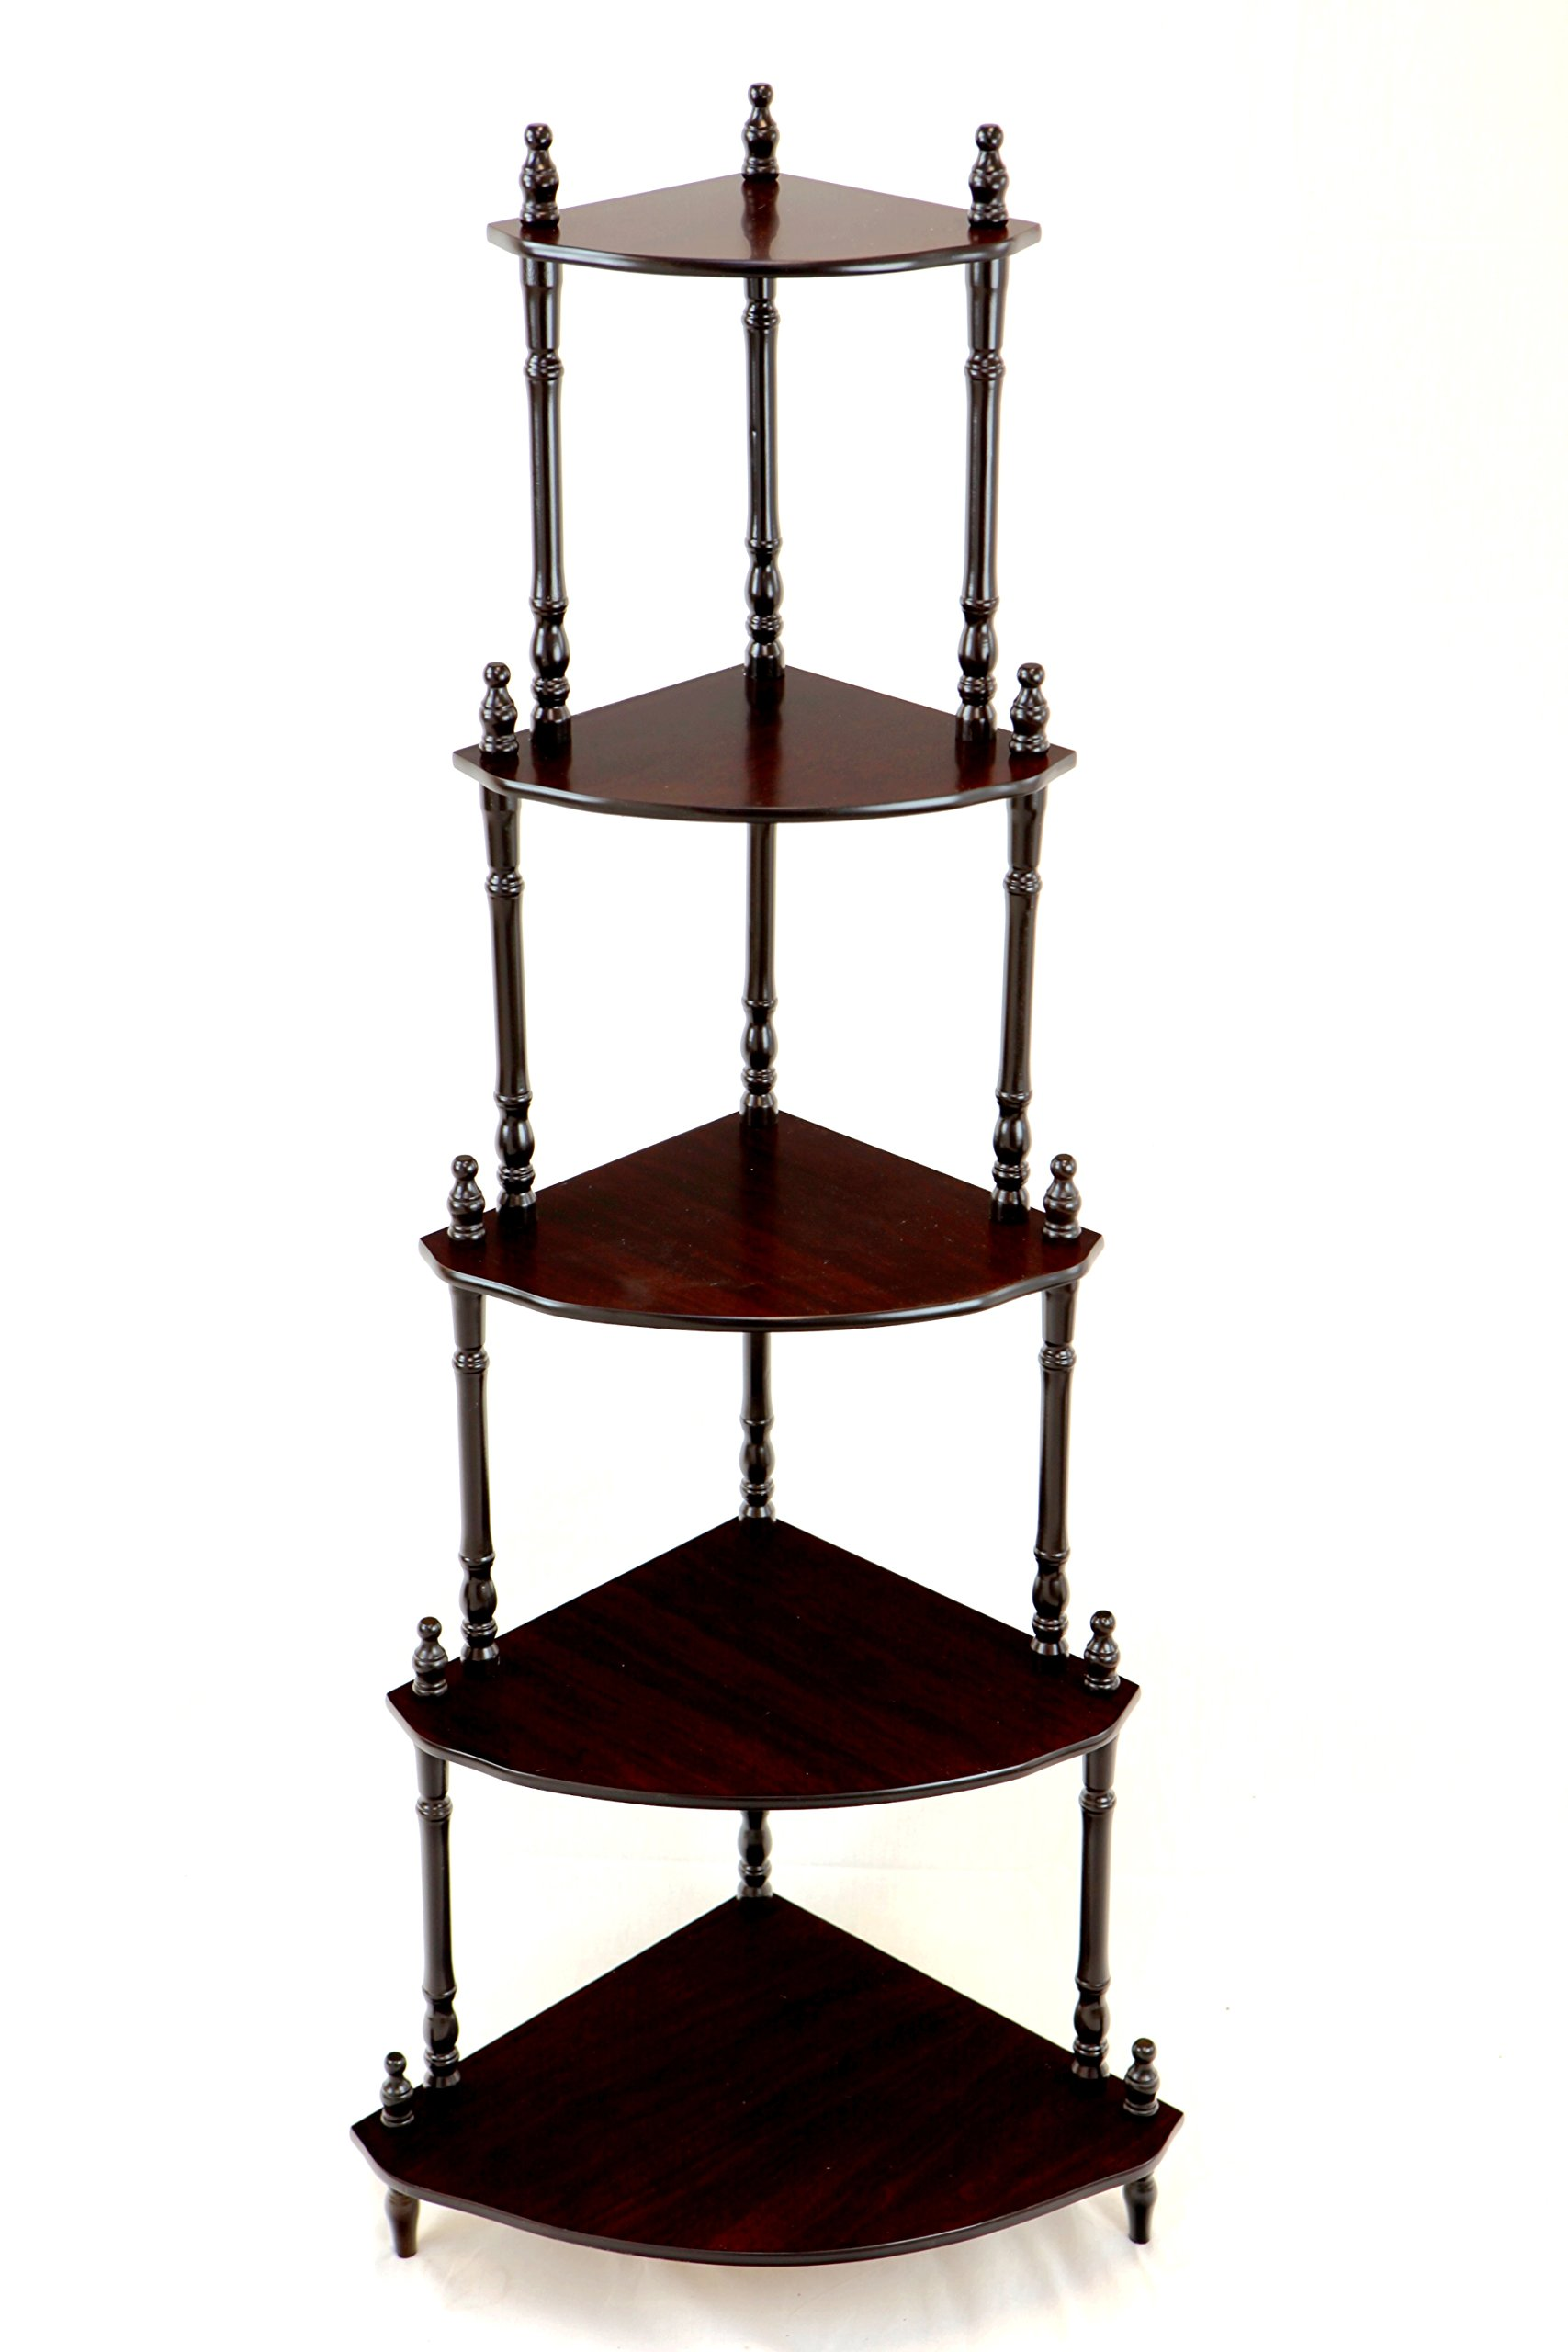 Frenchi Home Furnishing 5-Tier Corner Stand by Frenchi Home Furnishing